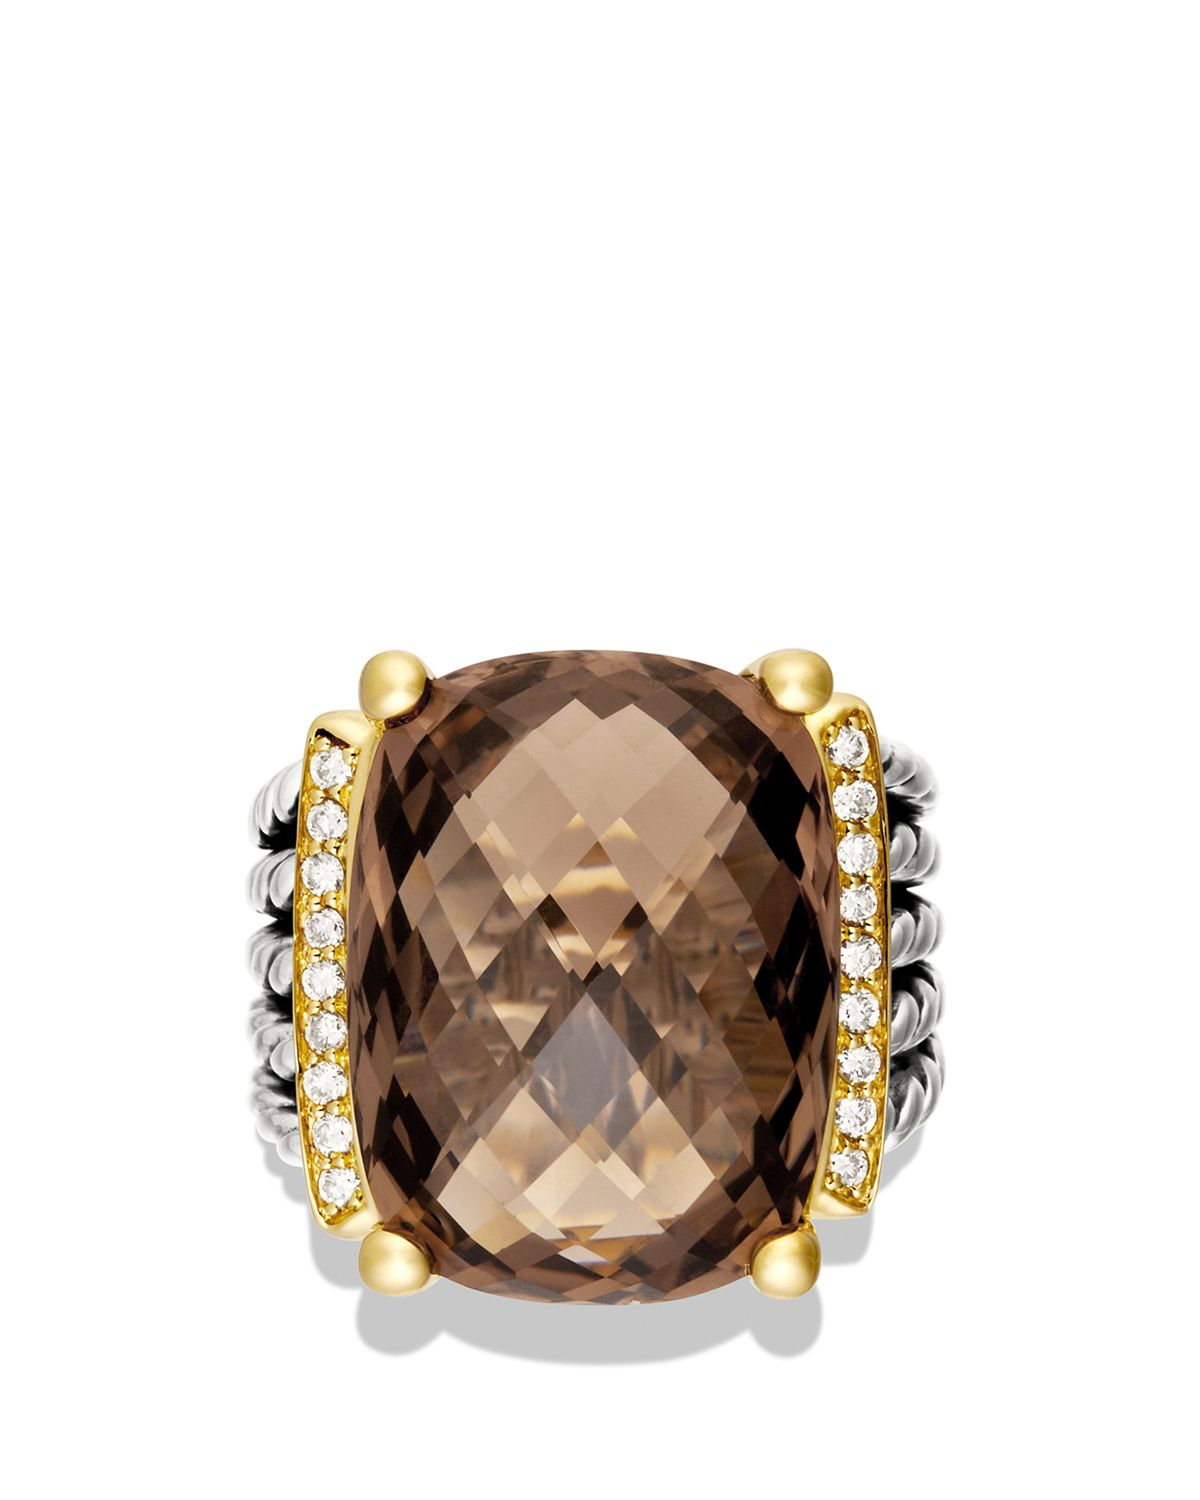 Lyst - David yurman Wheaton Ring With Smoky Quartz And ... Gold And Diamonds